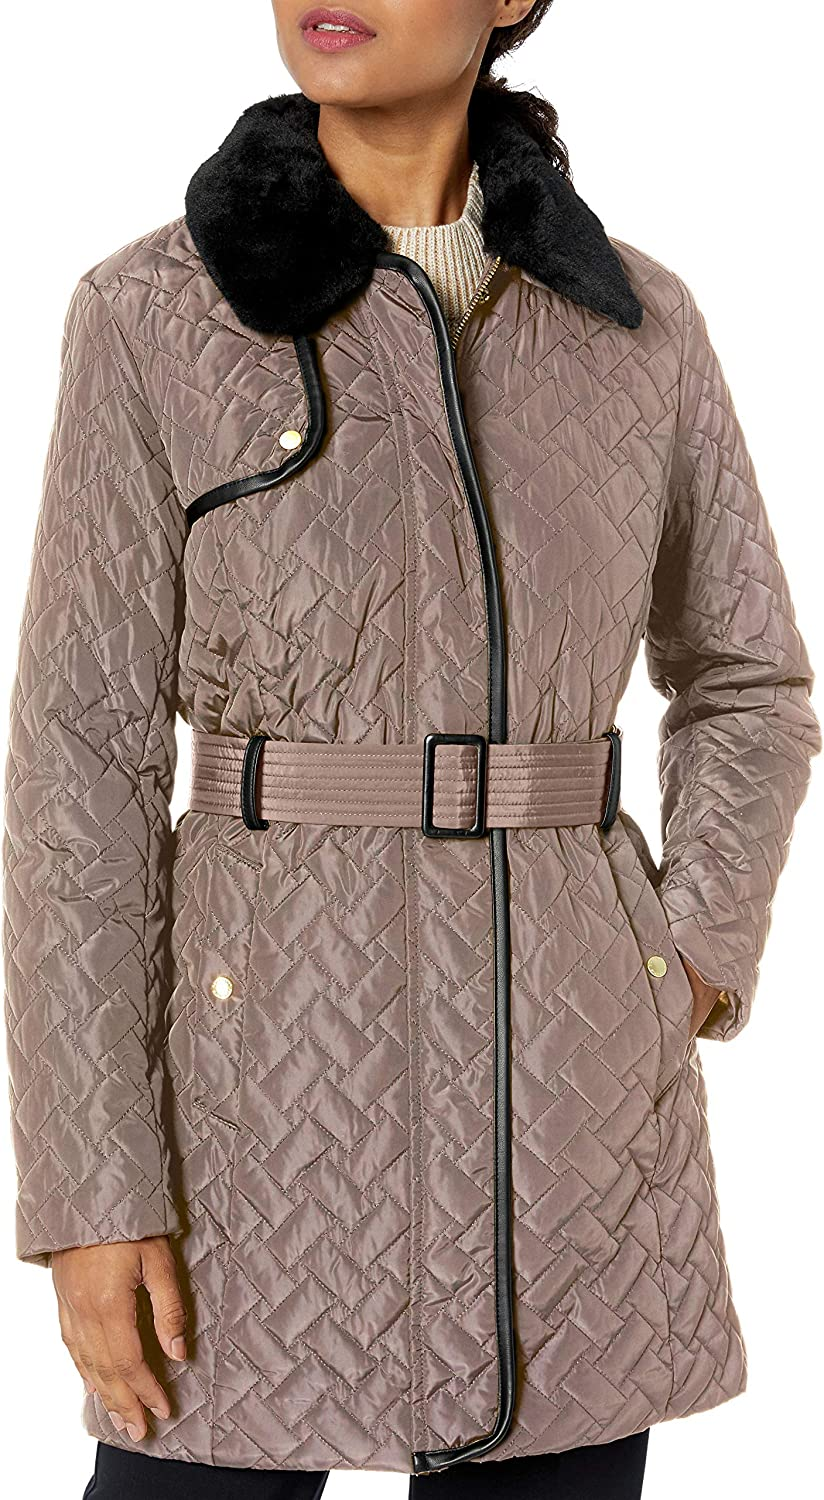 Cole Haan Women's Coat Max 73% OFF mart Trench Quilted